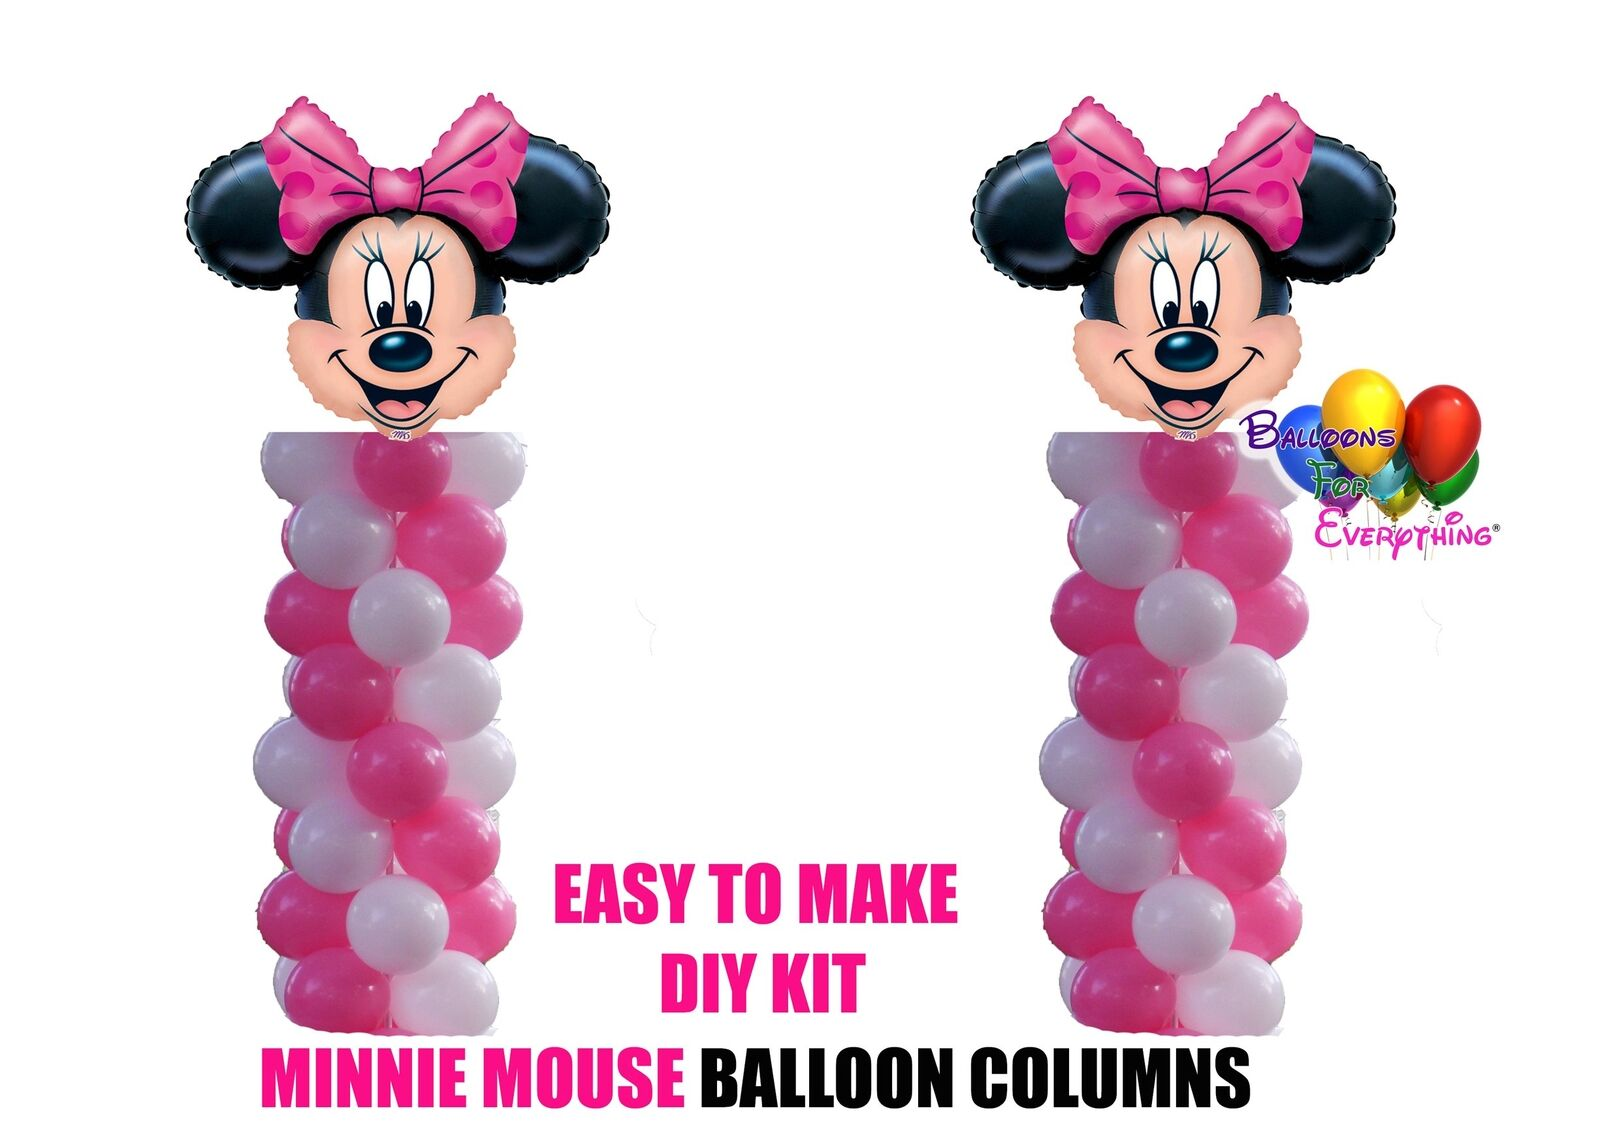 Rosa Minnie Mouse Mouse Mouse Birthday Balloon Columns, Cake Table, Gift Table, DIY KIT Part 699c2b